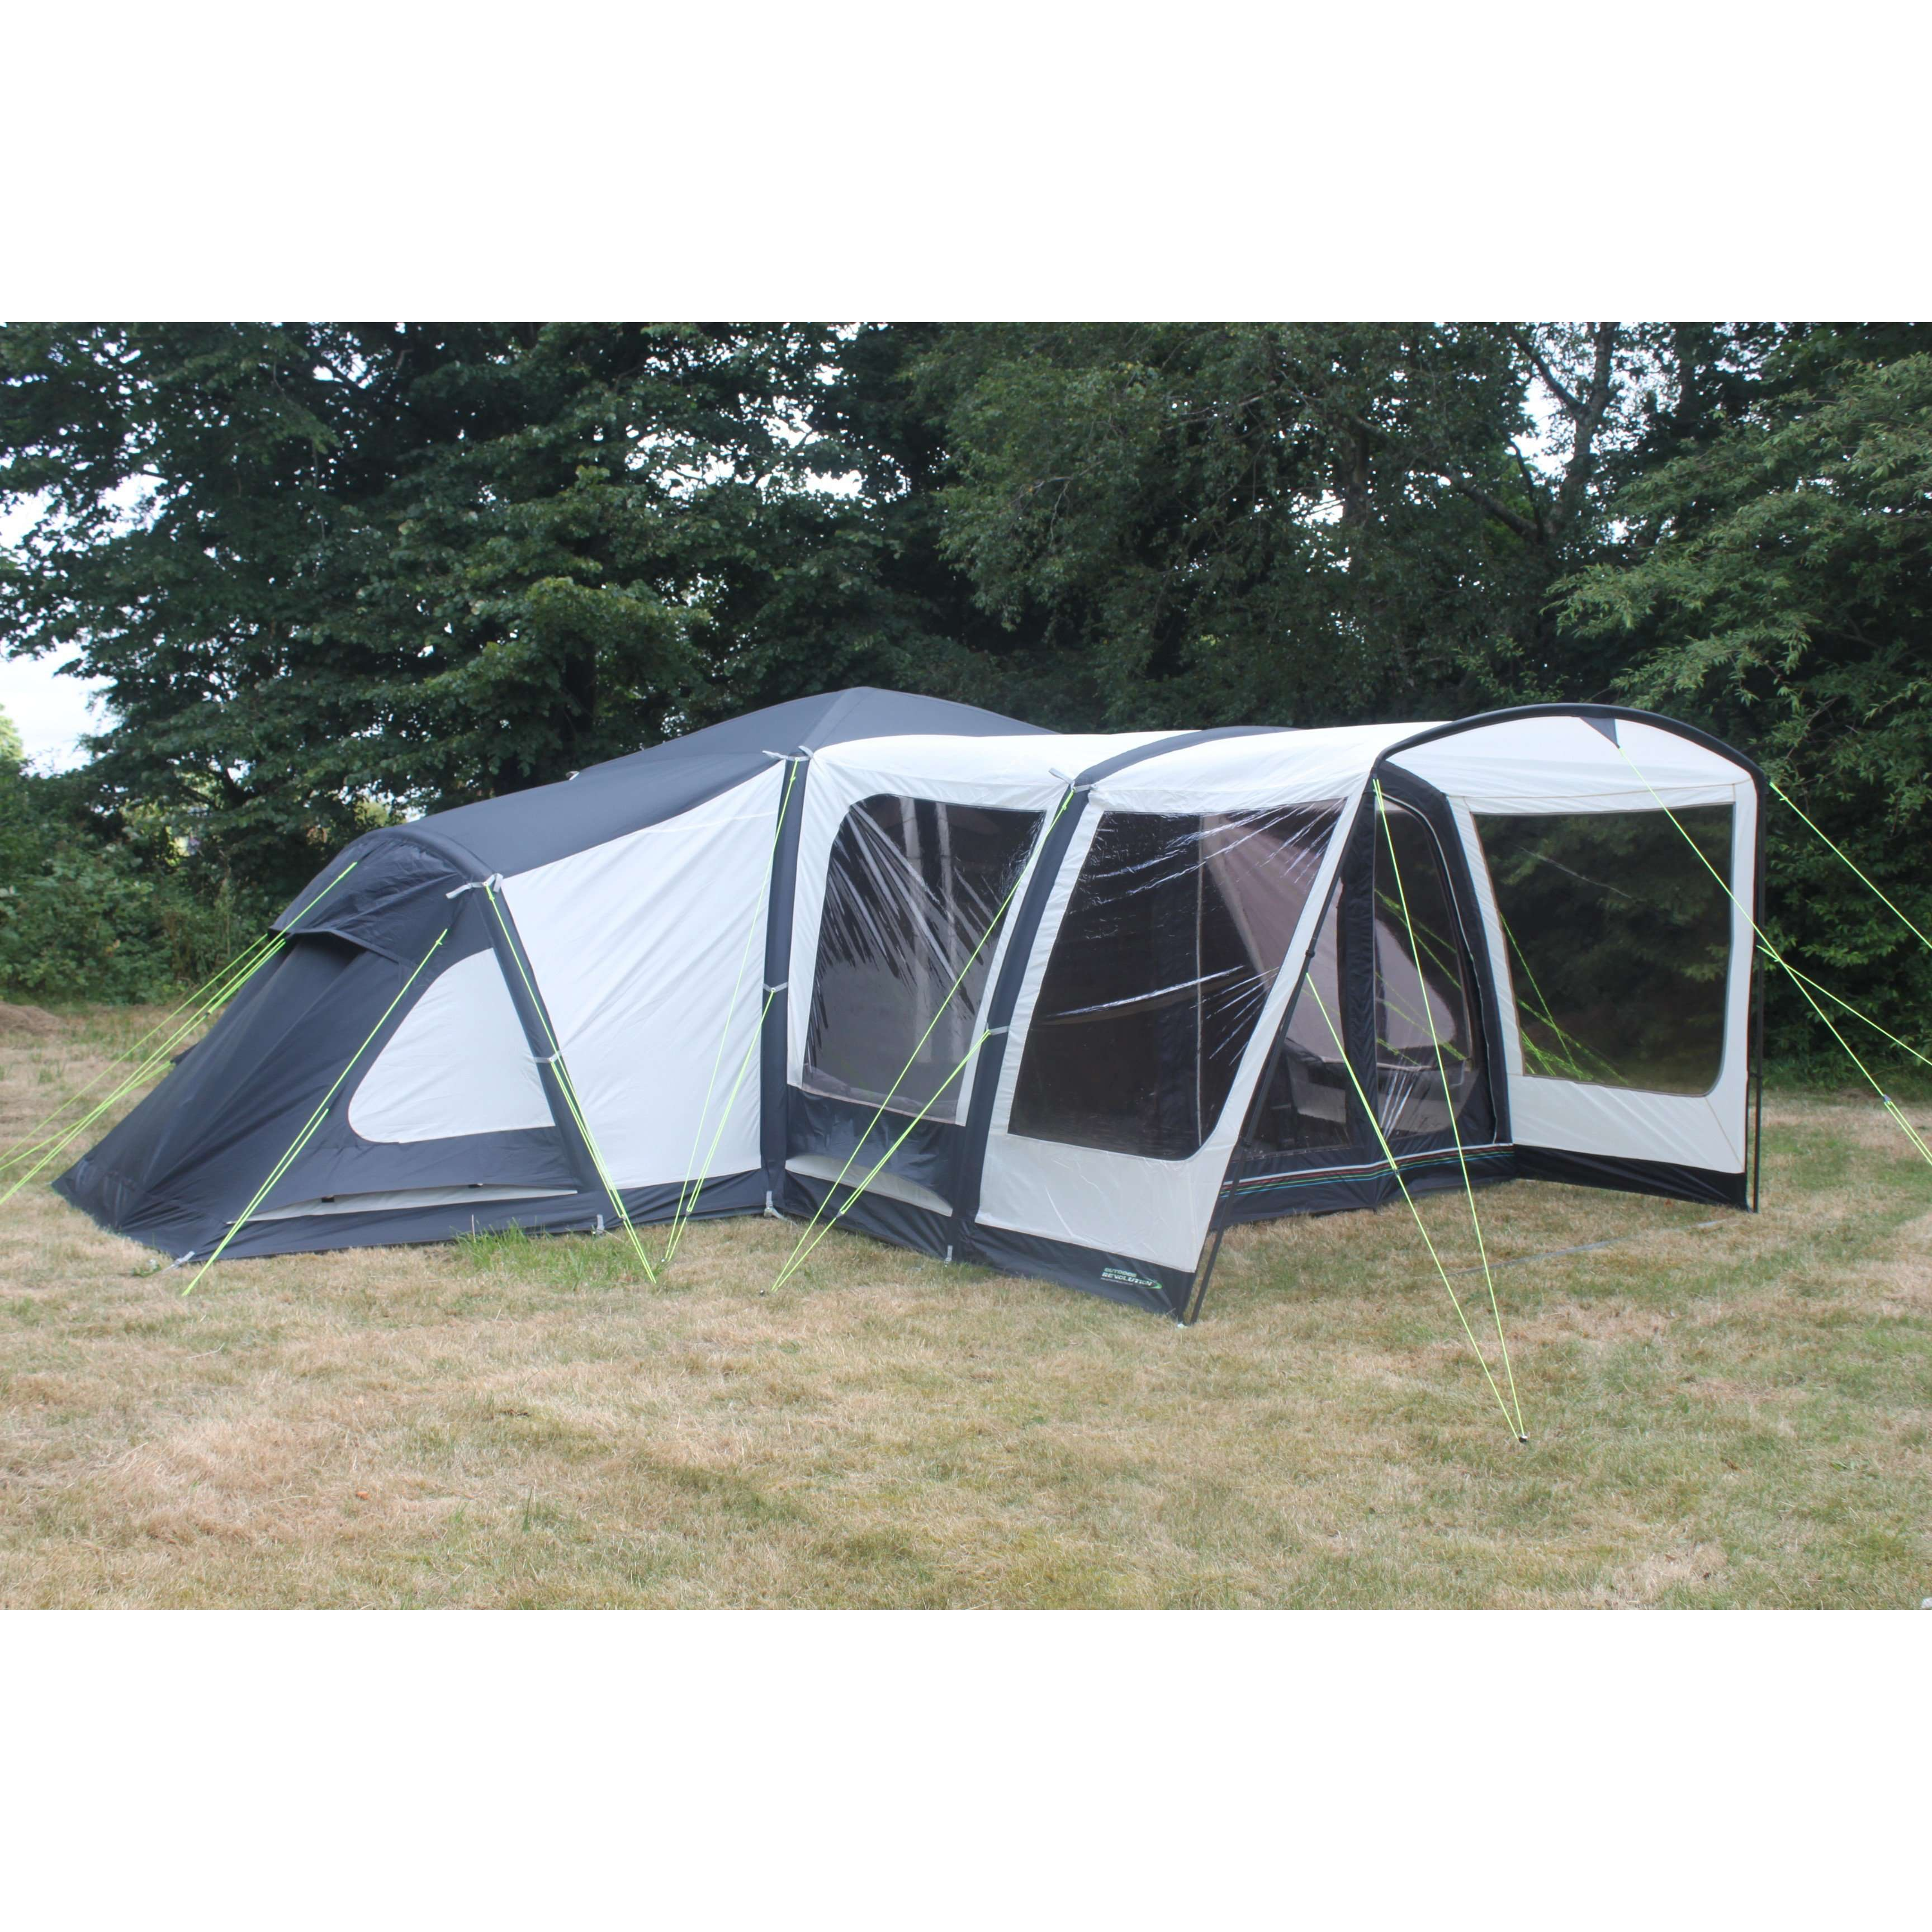 OUTDOOR REVOLUTION Airedale 12 Person Tent